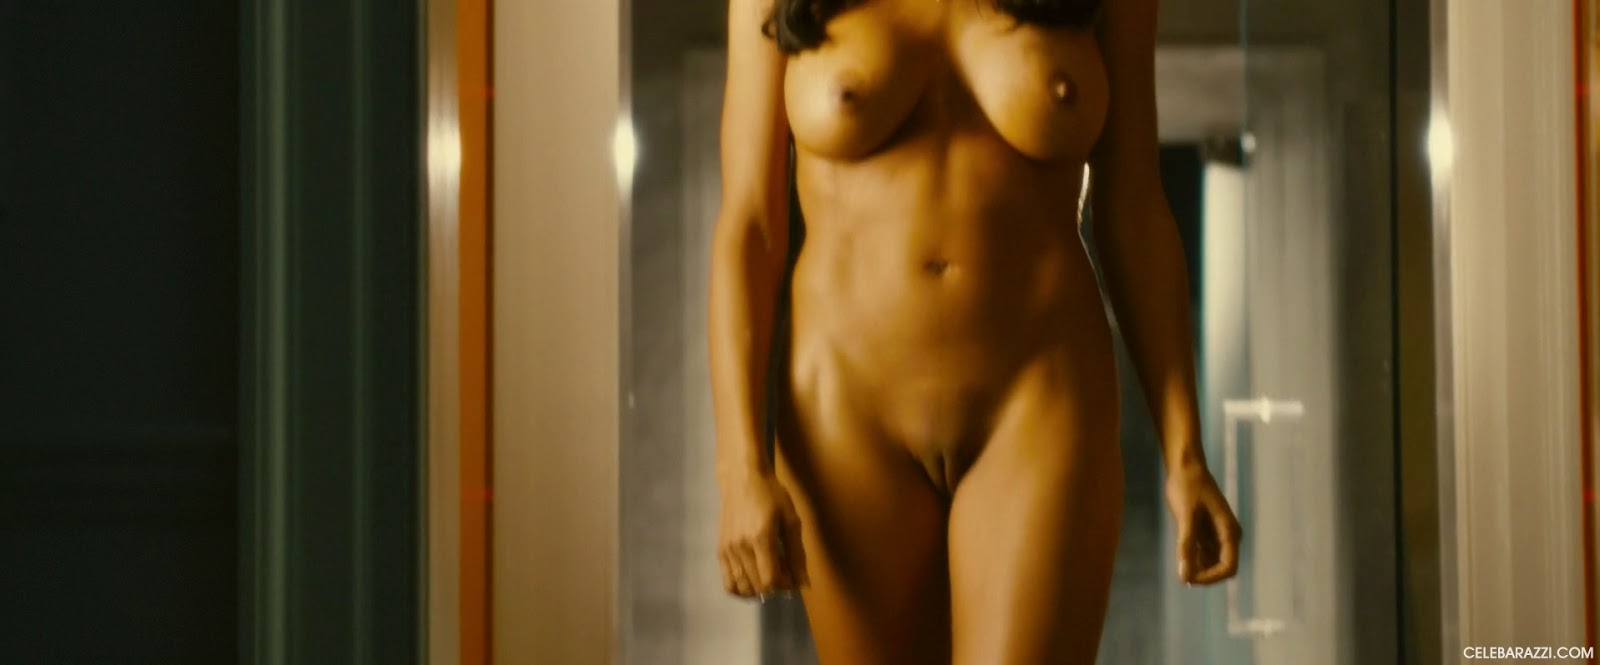 Think, that Rosario dawson frontal nude right!